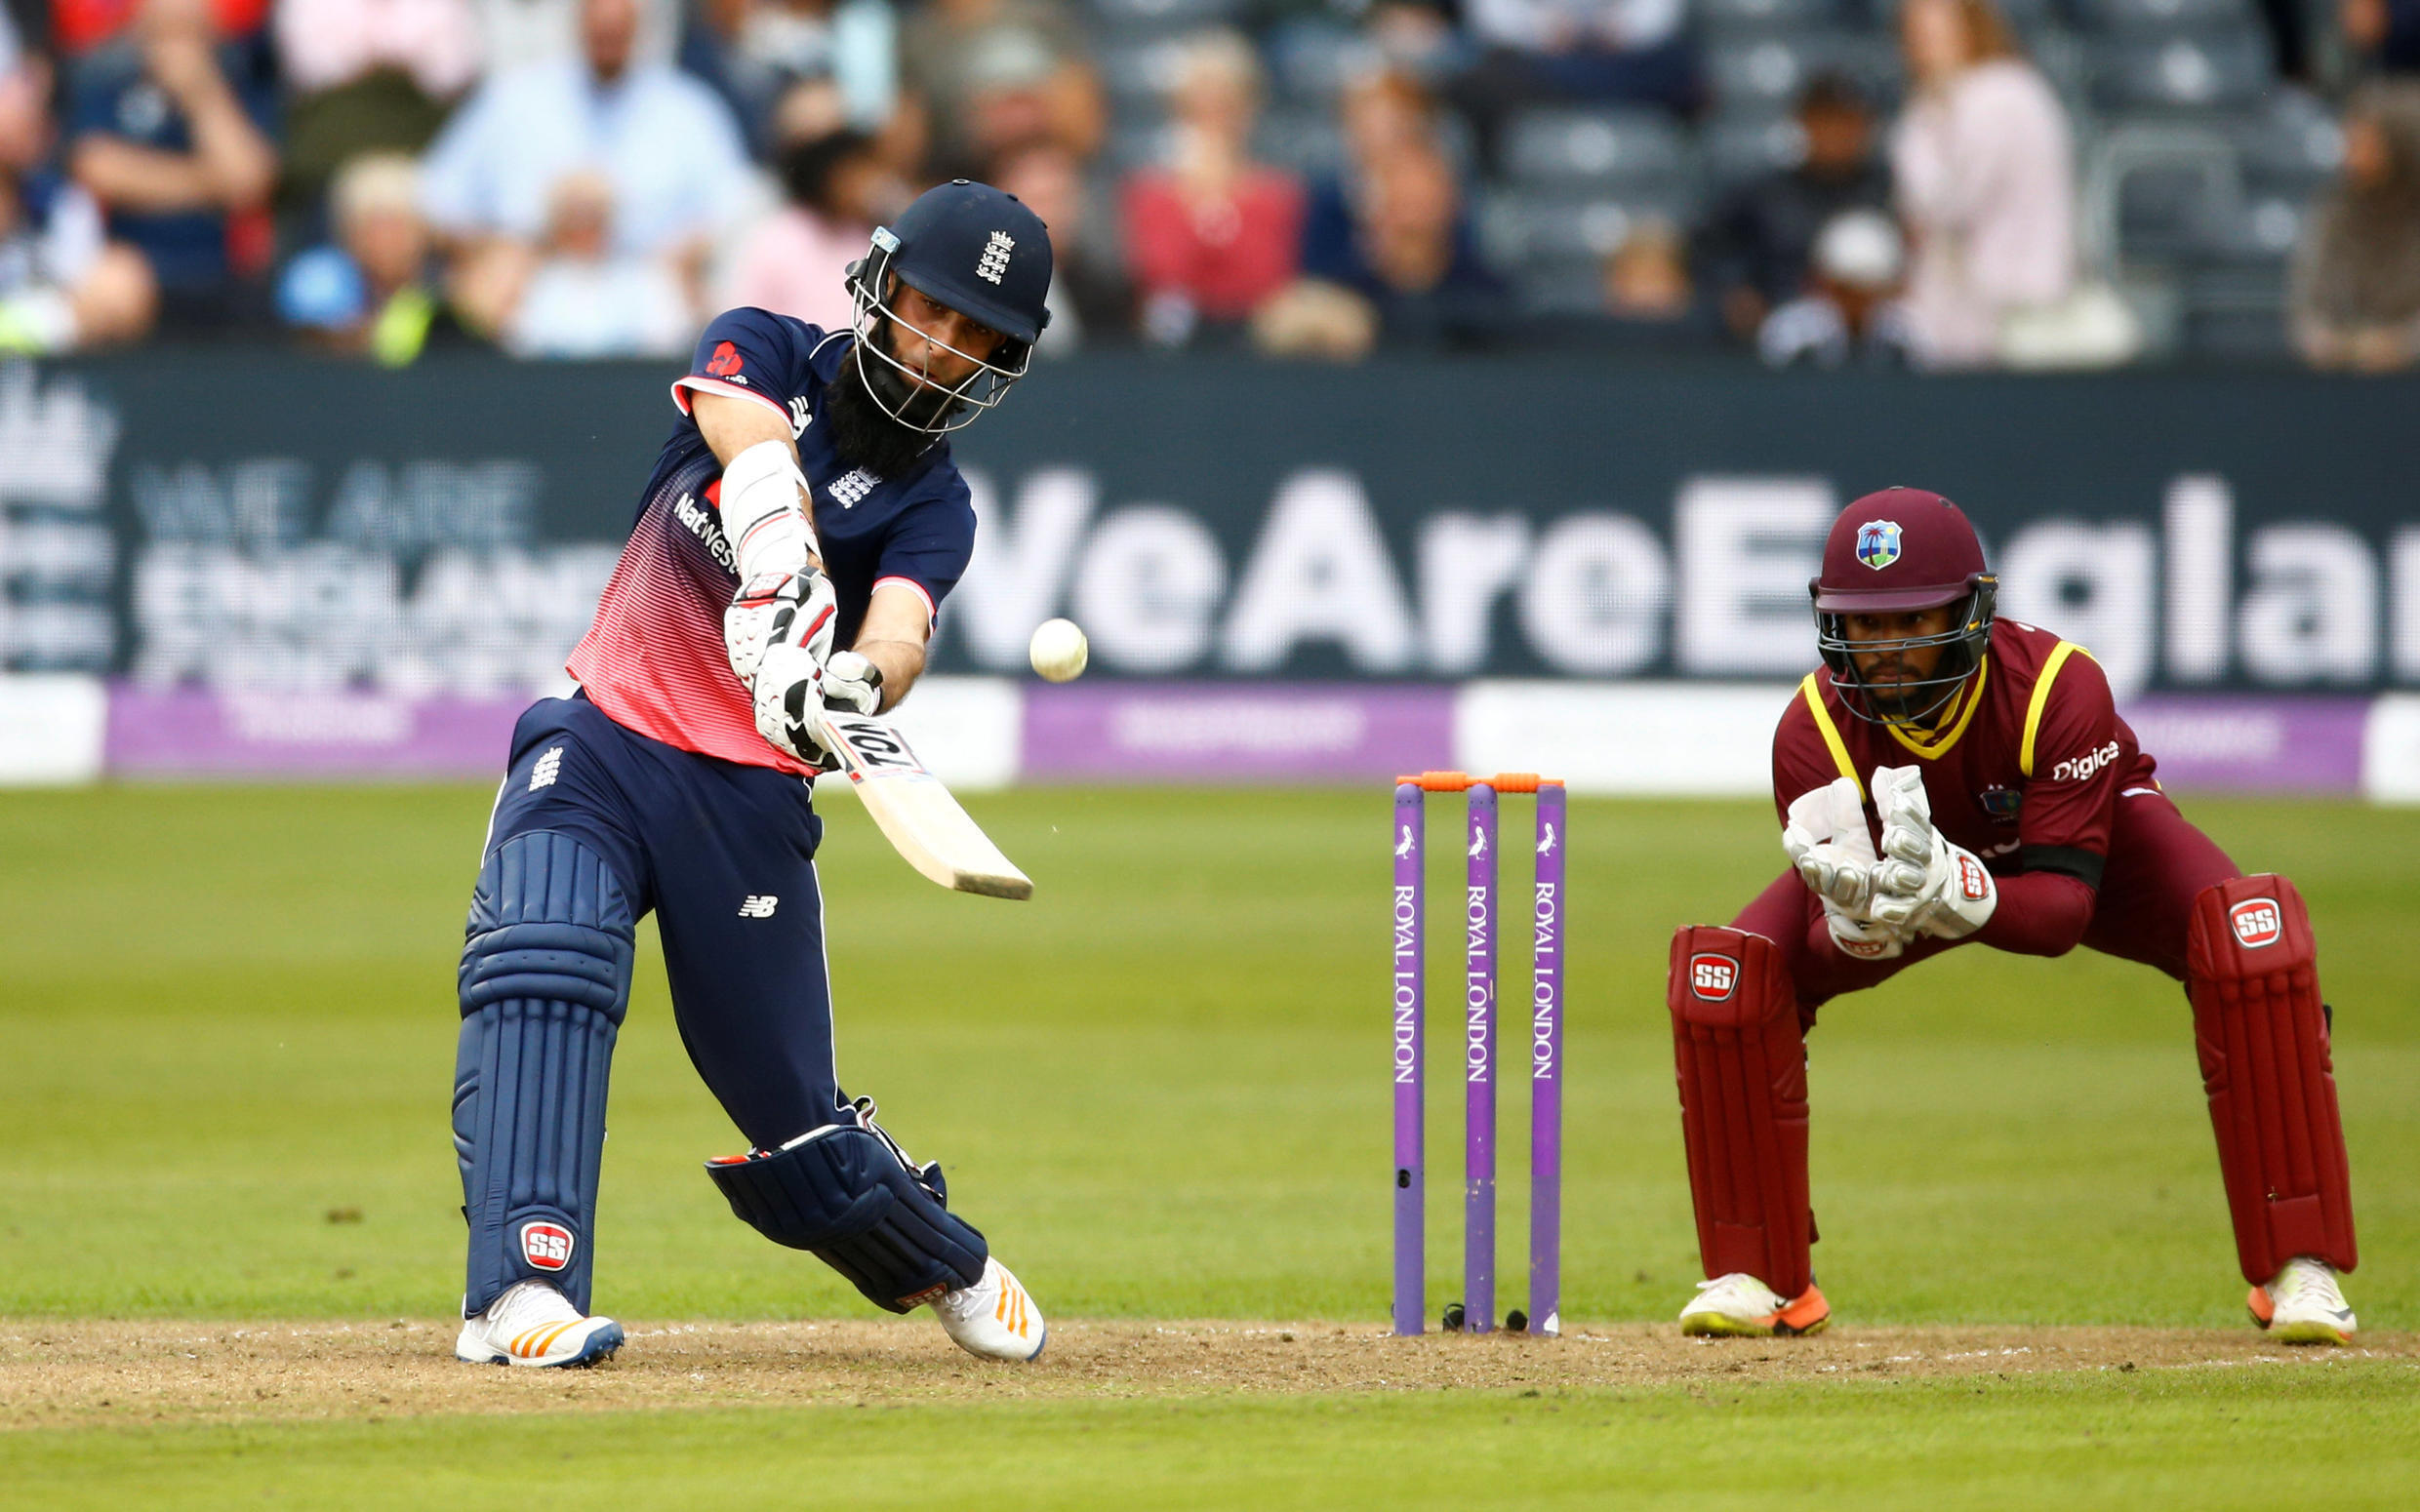 England's Moeen Ali in action against the West Indies.